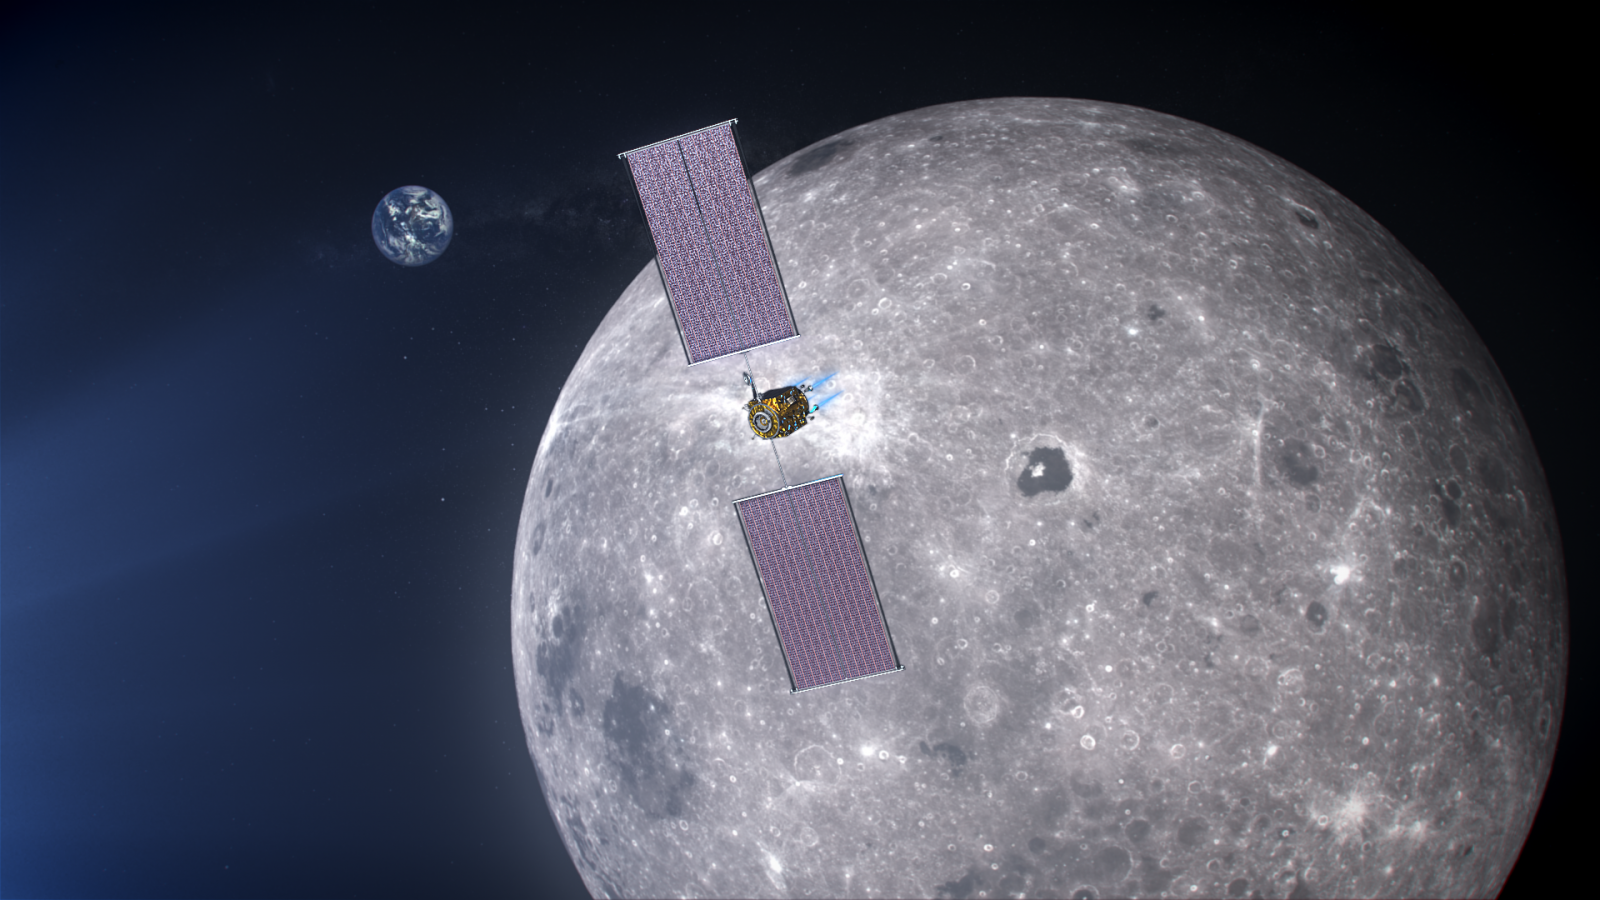 An illustration of the power and propulsion element of the Lunar Gateway, which is designed to be a reusable command module for astronauts in NASA's Artemis Moon program. Image Credit: NASA